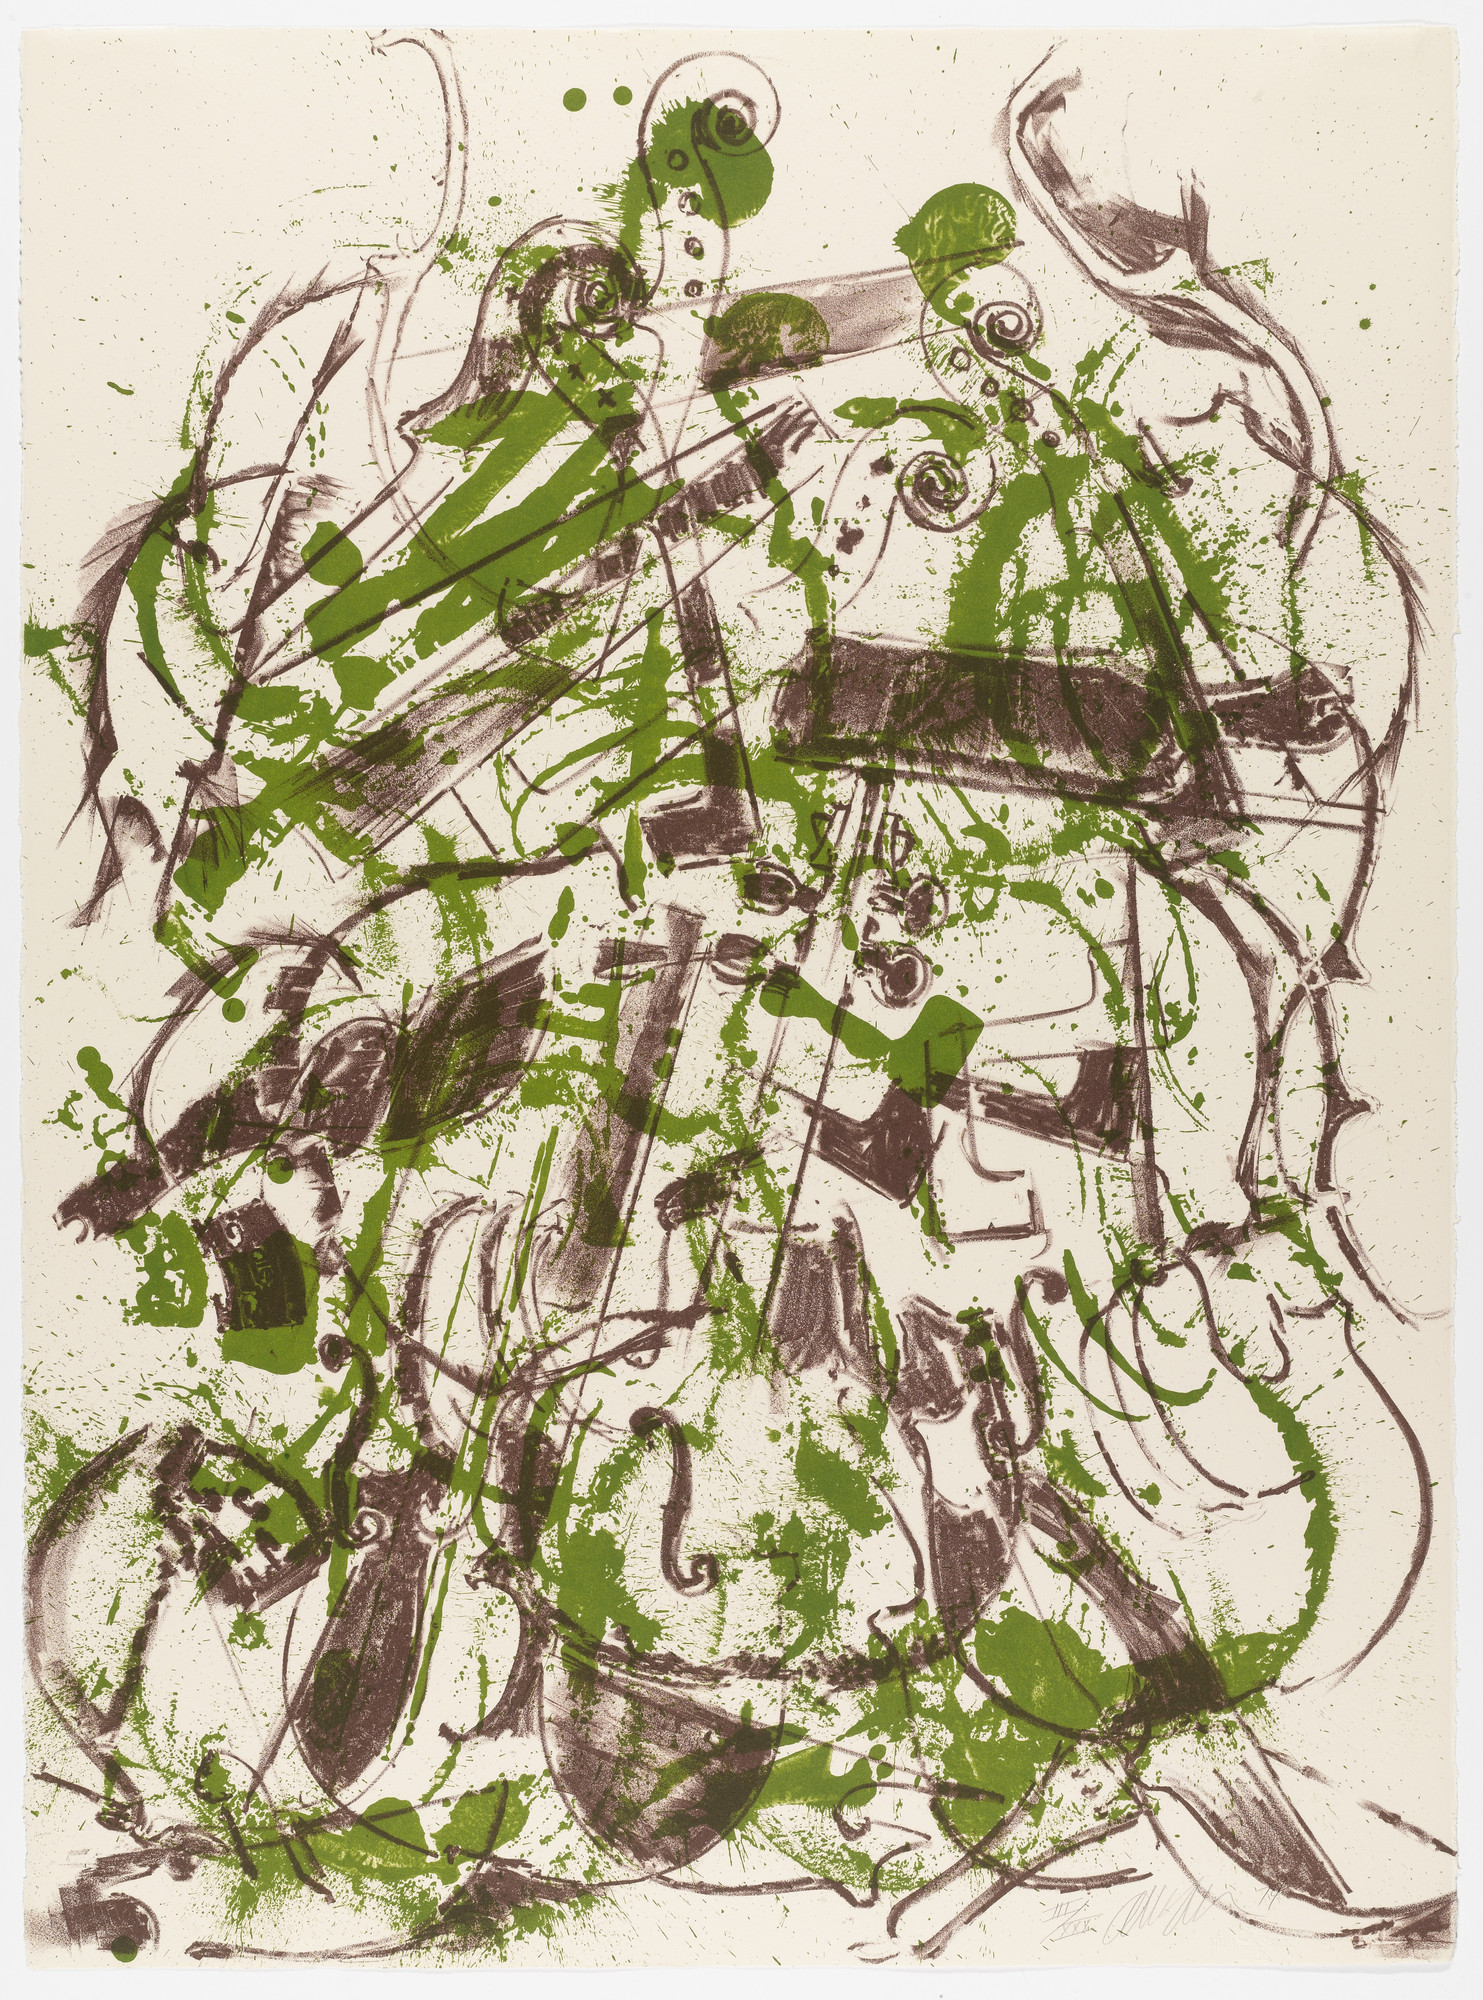 Arman. Untitled from Homage to Picasso (Hommage à Picasso). 1974, published 1973